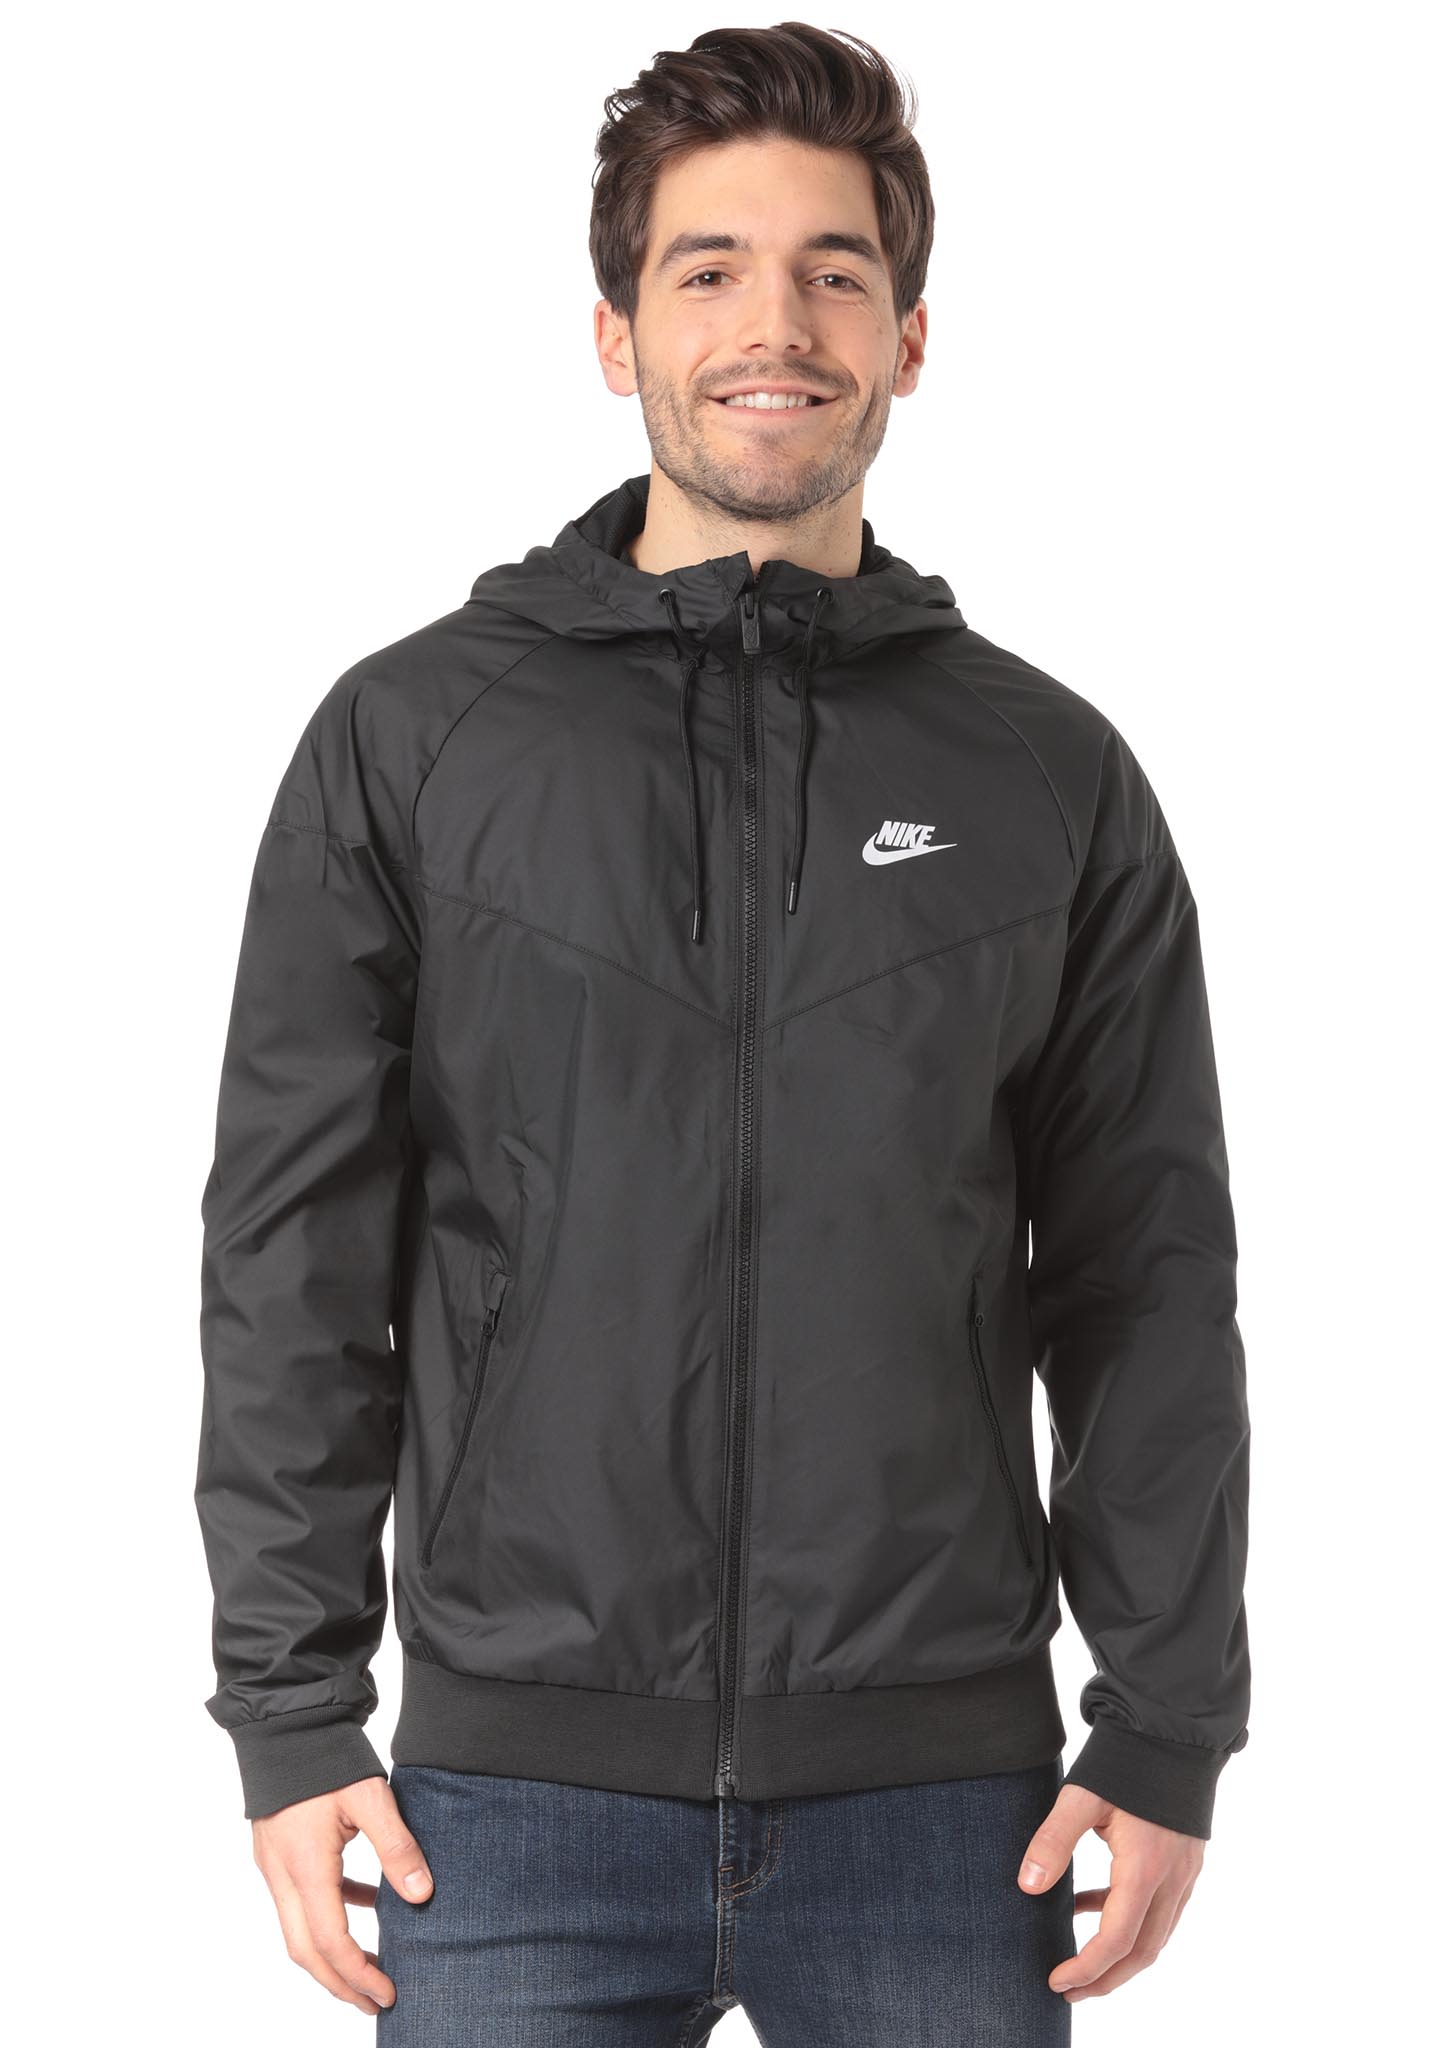 8f6175ccfc46 nike-sportswear-windrunner-chaqueta-hombres-negro.jpg